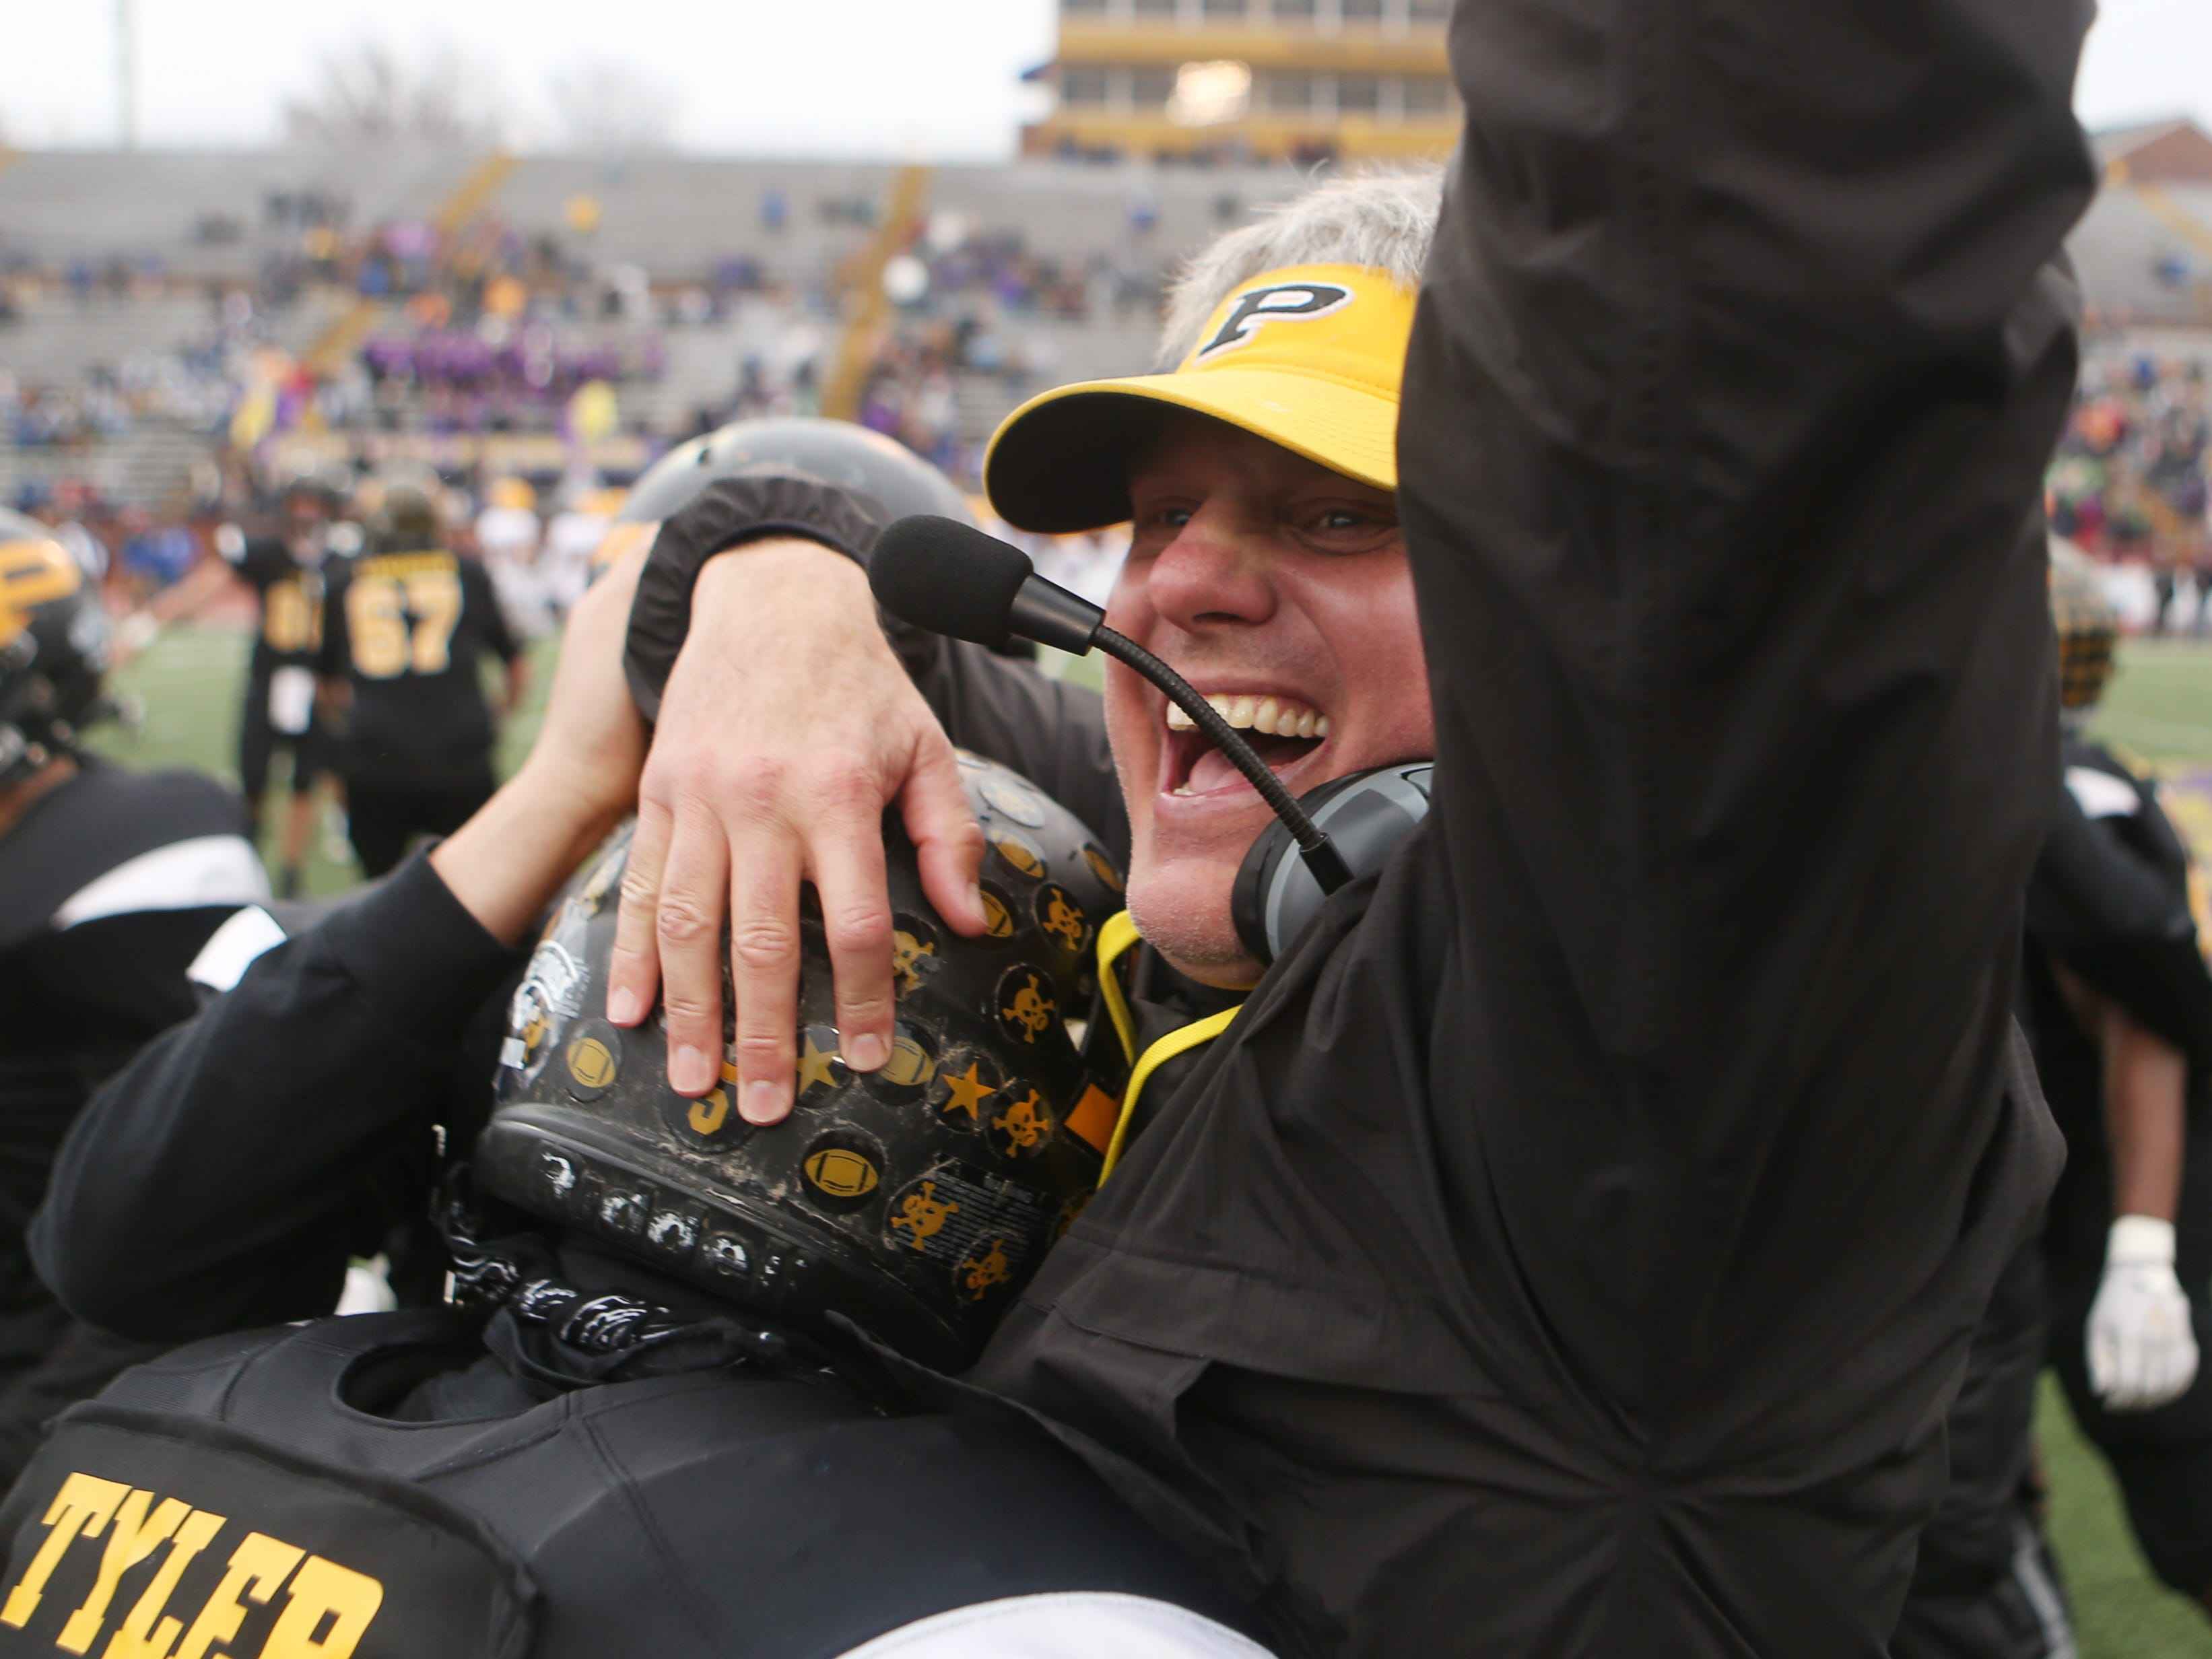 Peabody assistant coach Tab Vowell celebrates the team's win with Desmond Tyler (5) in the Class 2A BlueCross Bowl state championship at Tennessee Tech's Tucker Stadium in Cookeville, Tenn., on Thursday, Nov. 29, 2018.